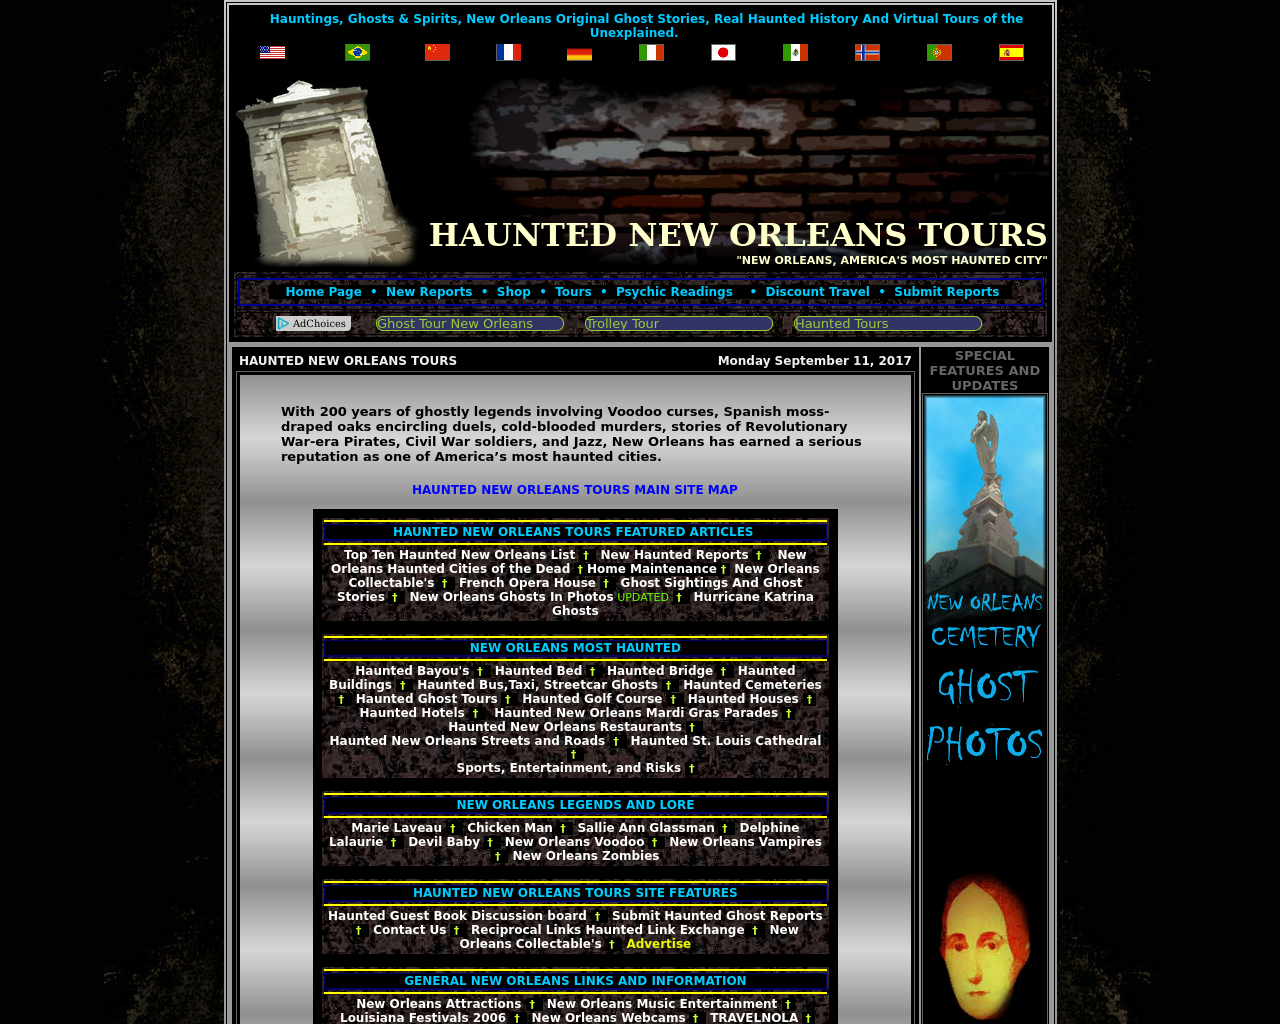 HAUNTED-NEW-ORLEANS-TOURS-Advertising-Reviews-Pricing